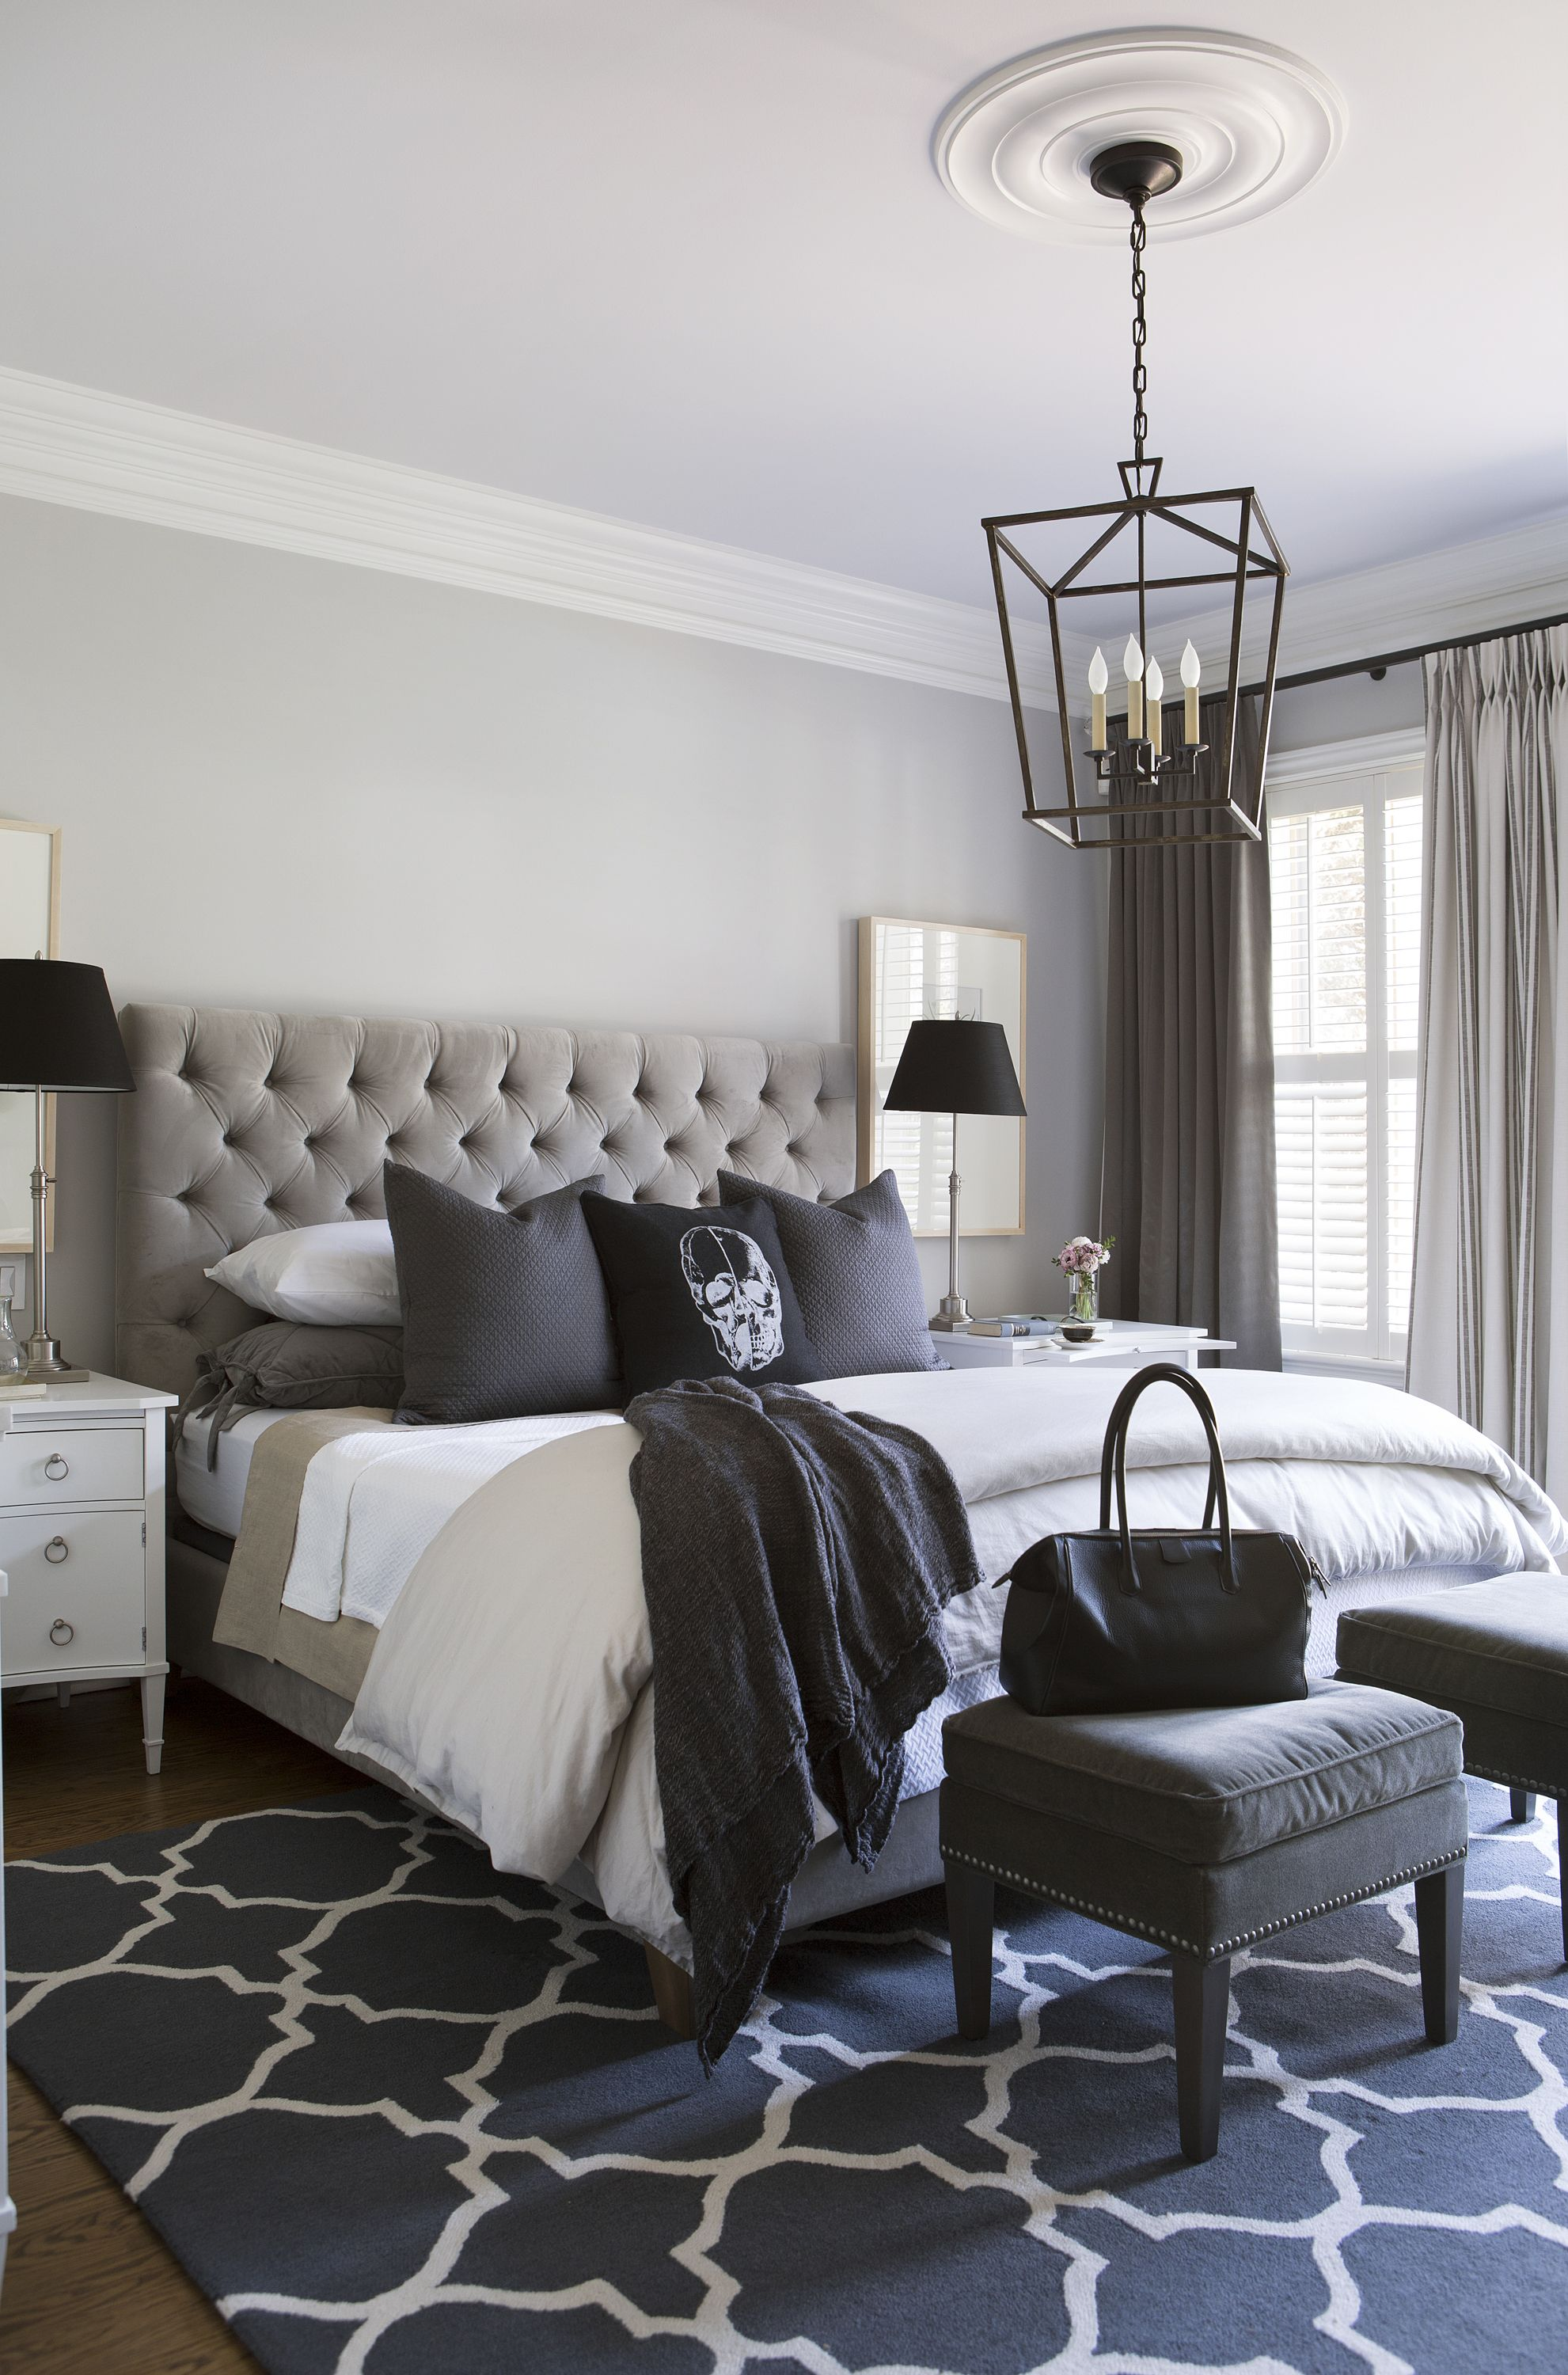 Master Bedroom In Greys And Lavender With Skull Cushion Jean Stephane Beauchamp Design Photo M Small Master Bedroom Master Bedrooms Decor Bedroom Interior